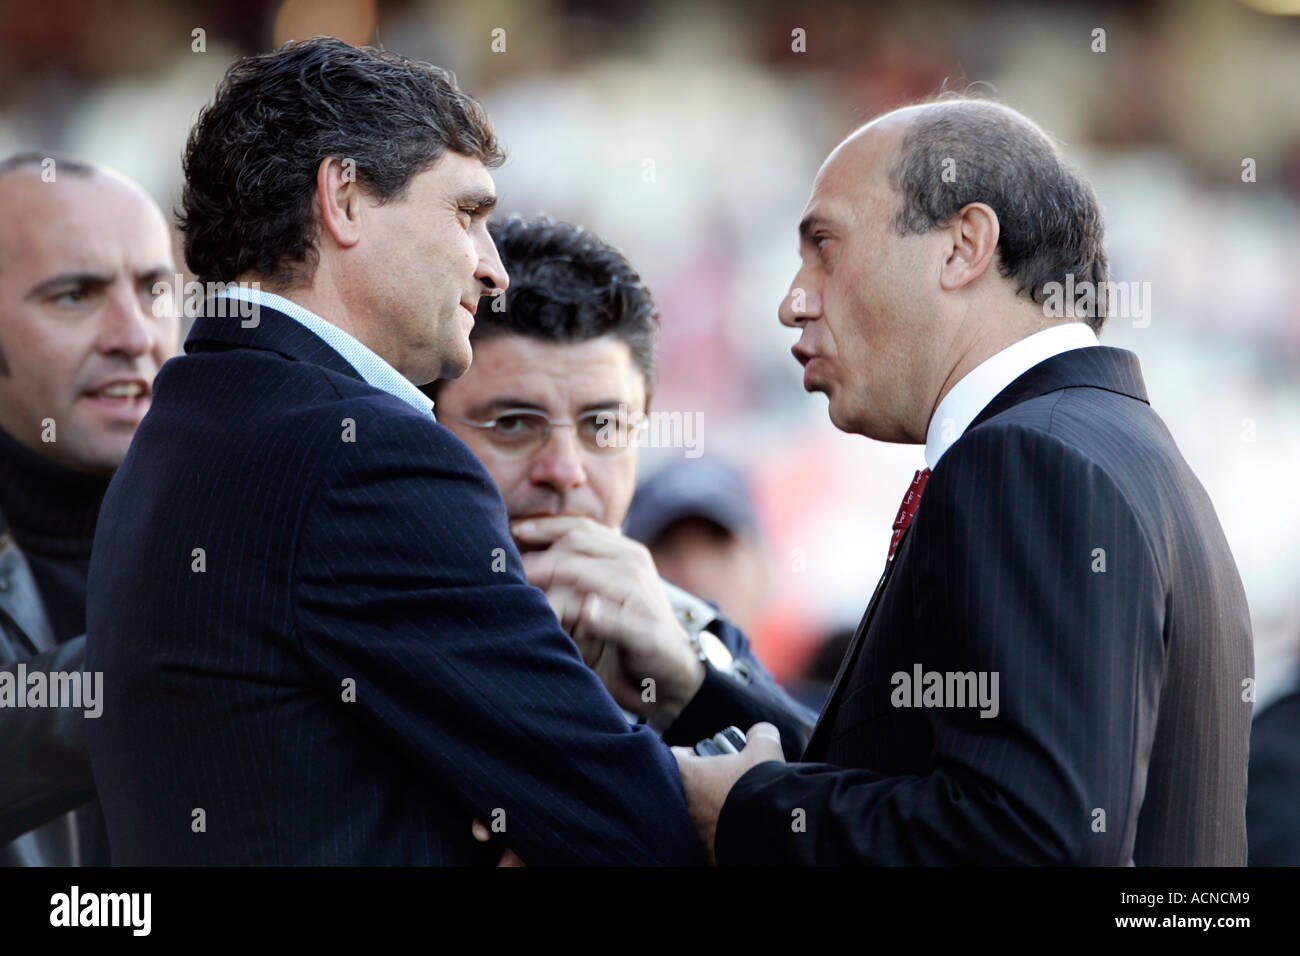 Jose Maria del Nido (right), manager of Sevilla FC, talking with Juande Ramos (left), coach of the team and other staff members - Stock Image